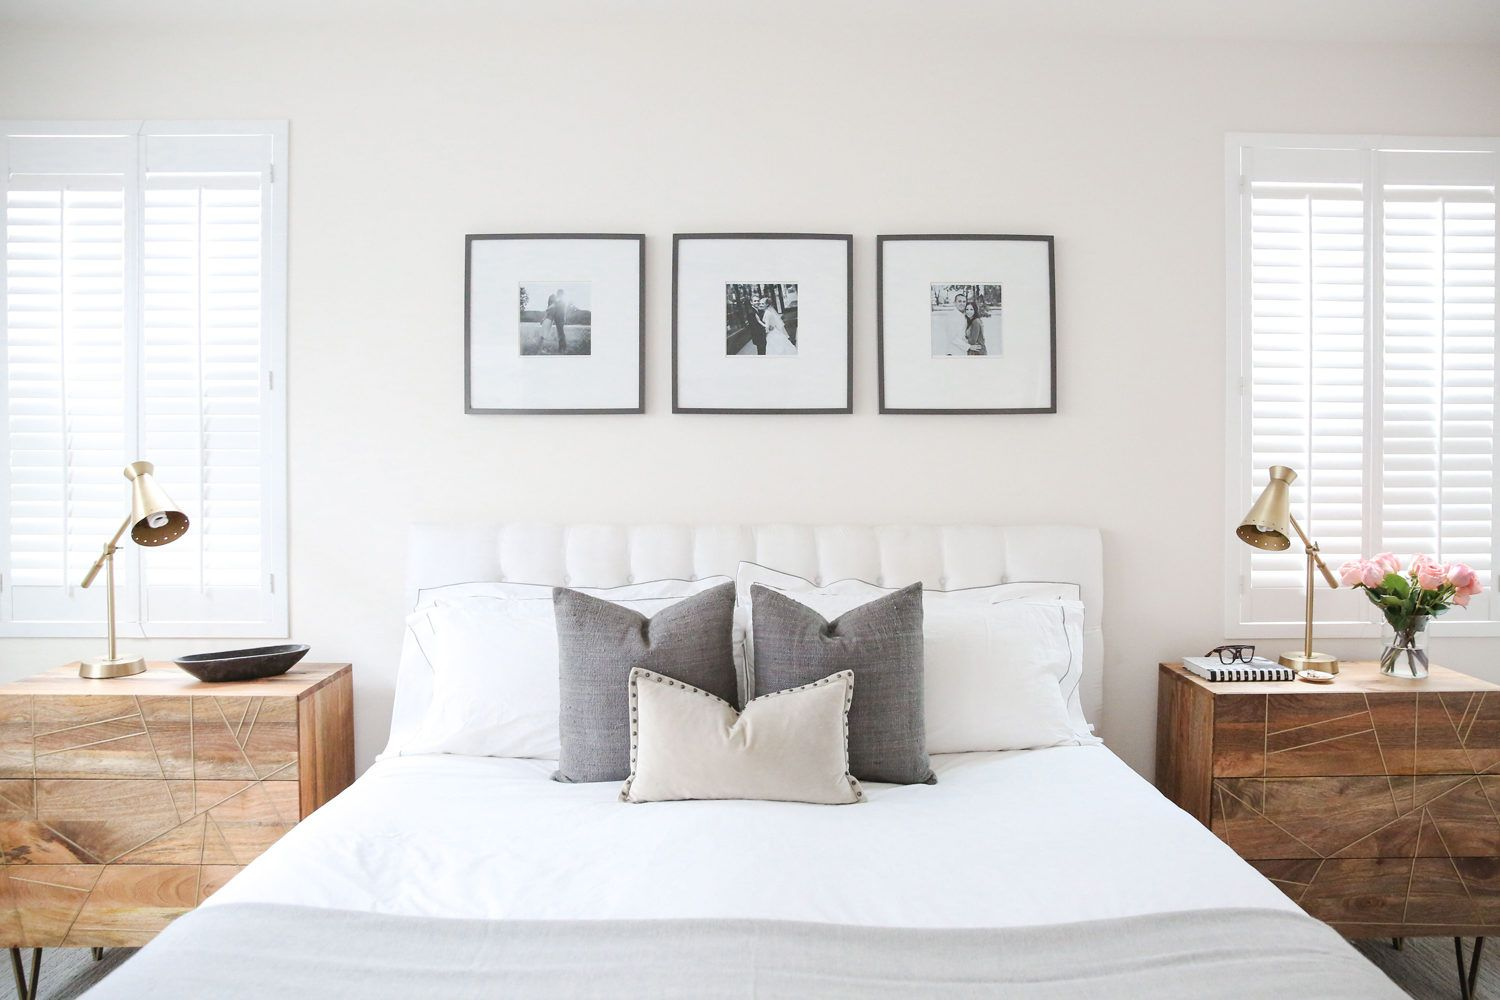 Merrick At Home: Master Bedroom and Bath | Furniture layout ...